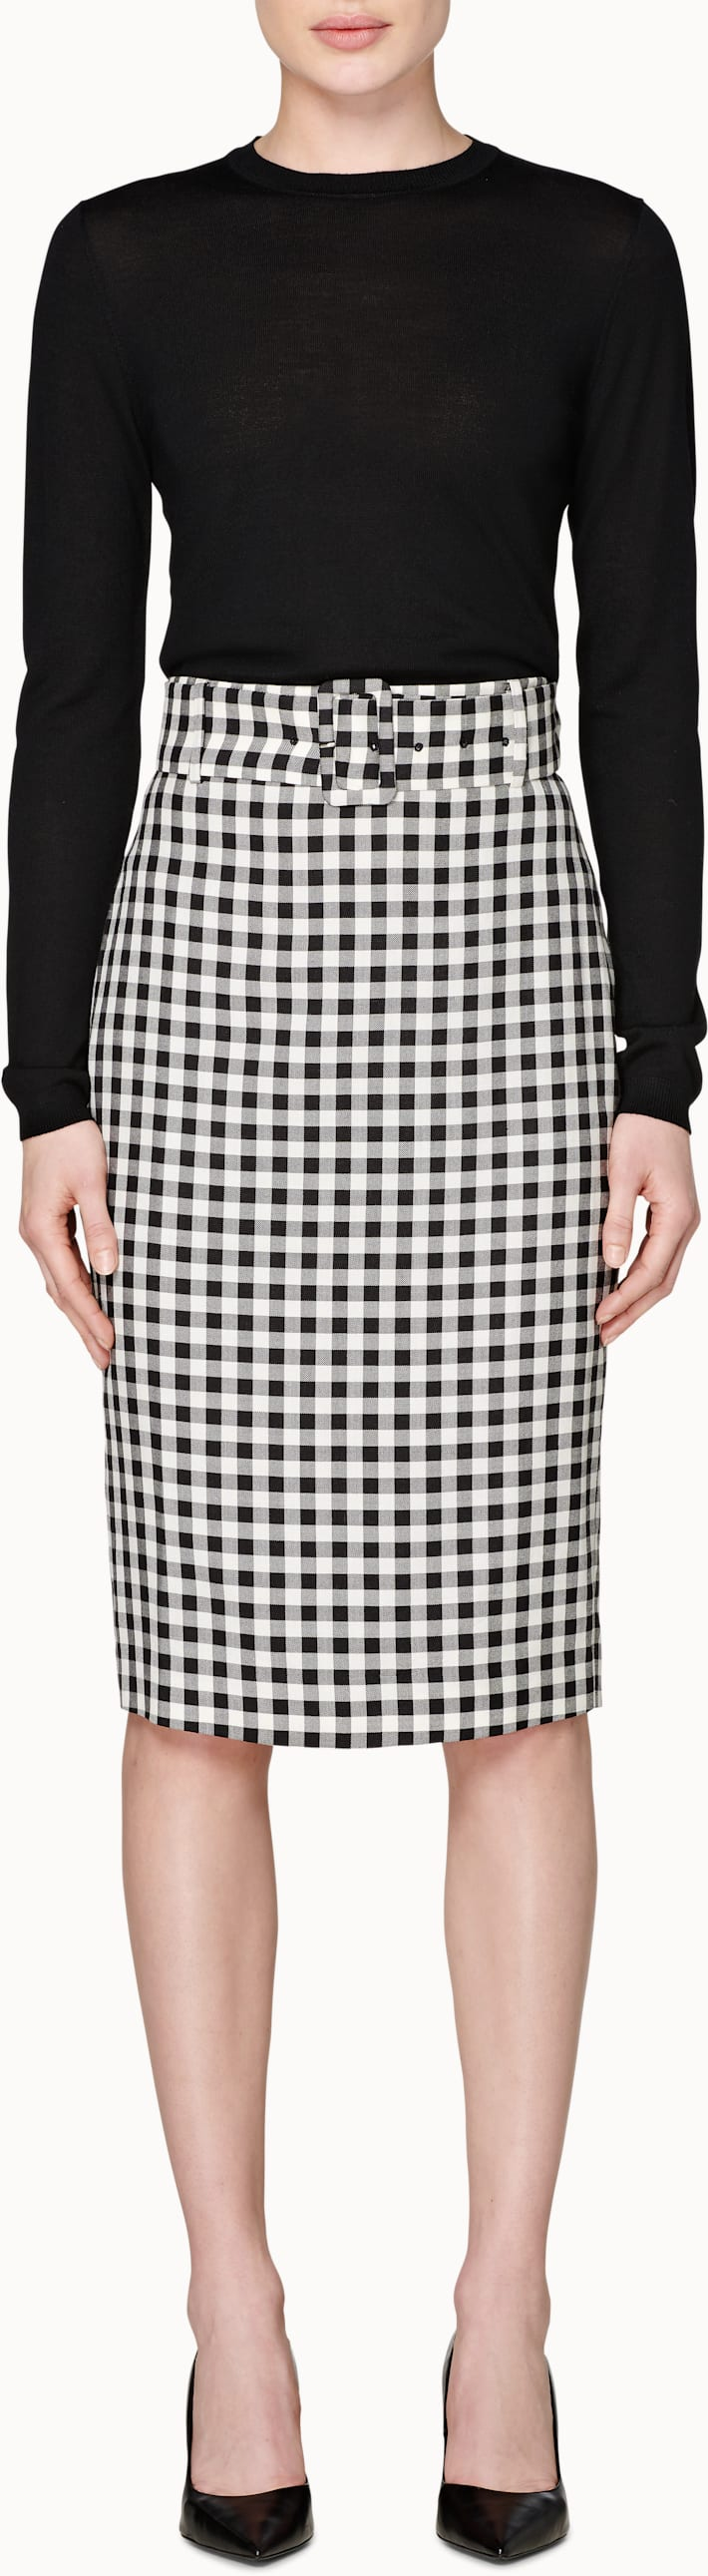 Darell Black & White Checked Skirt